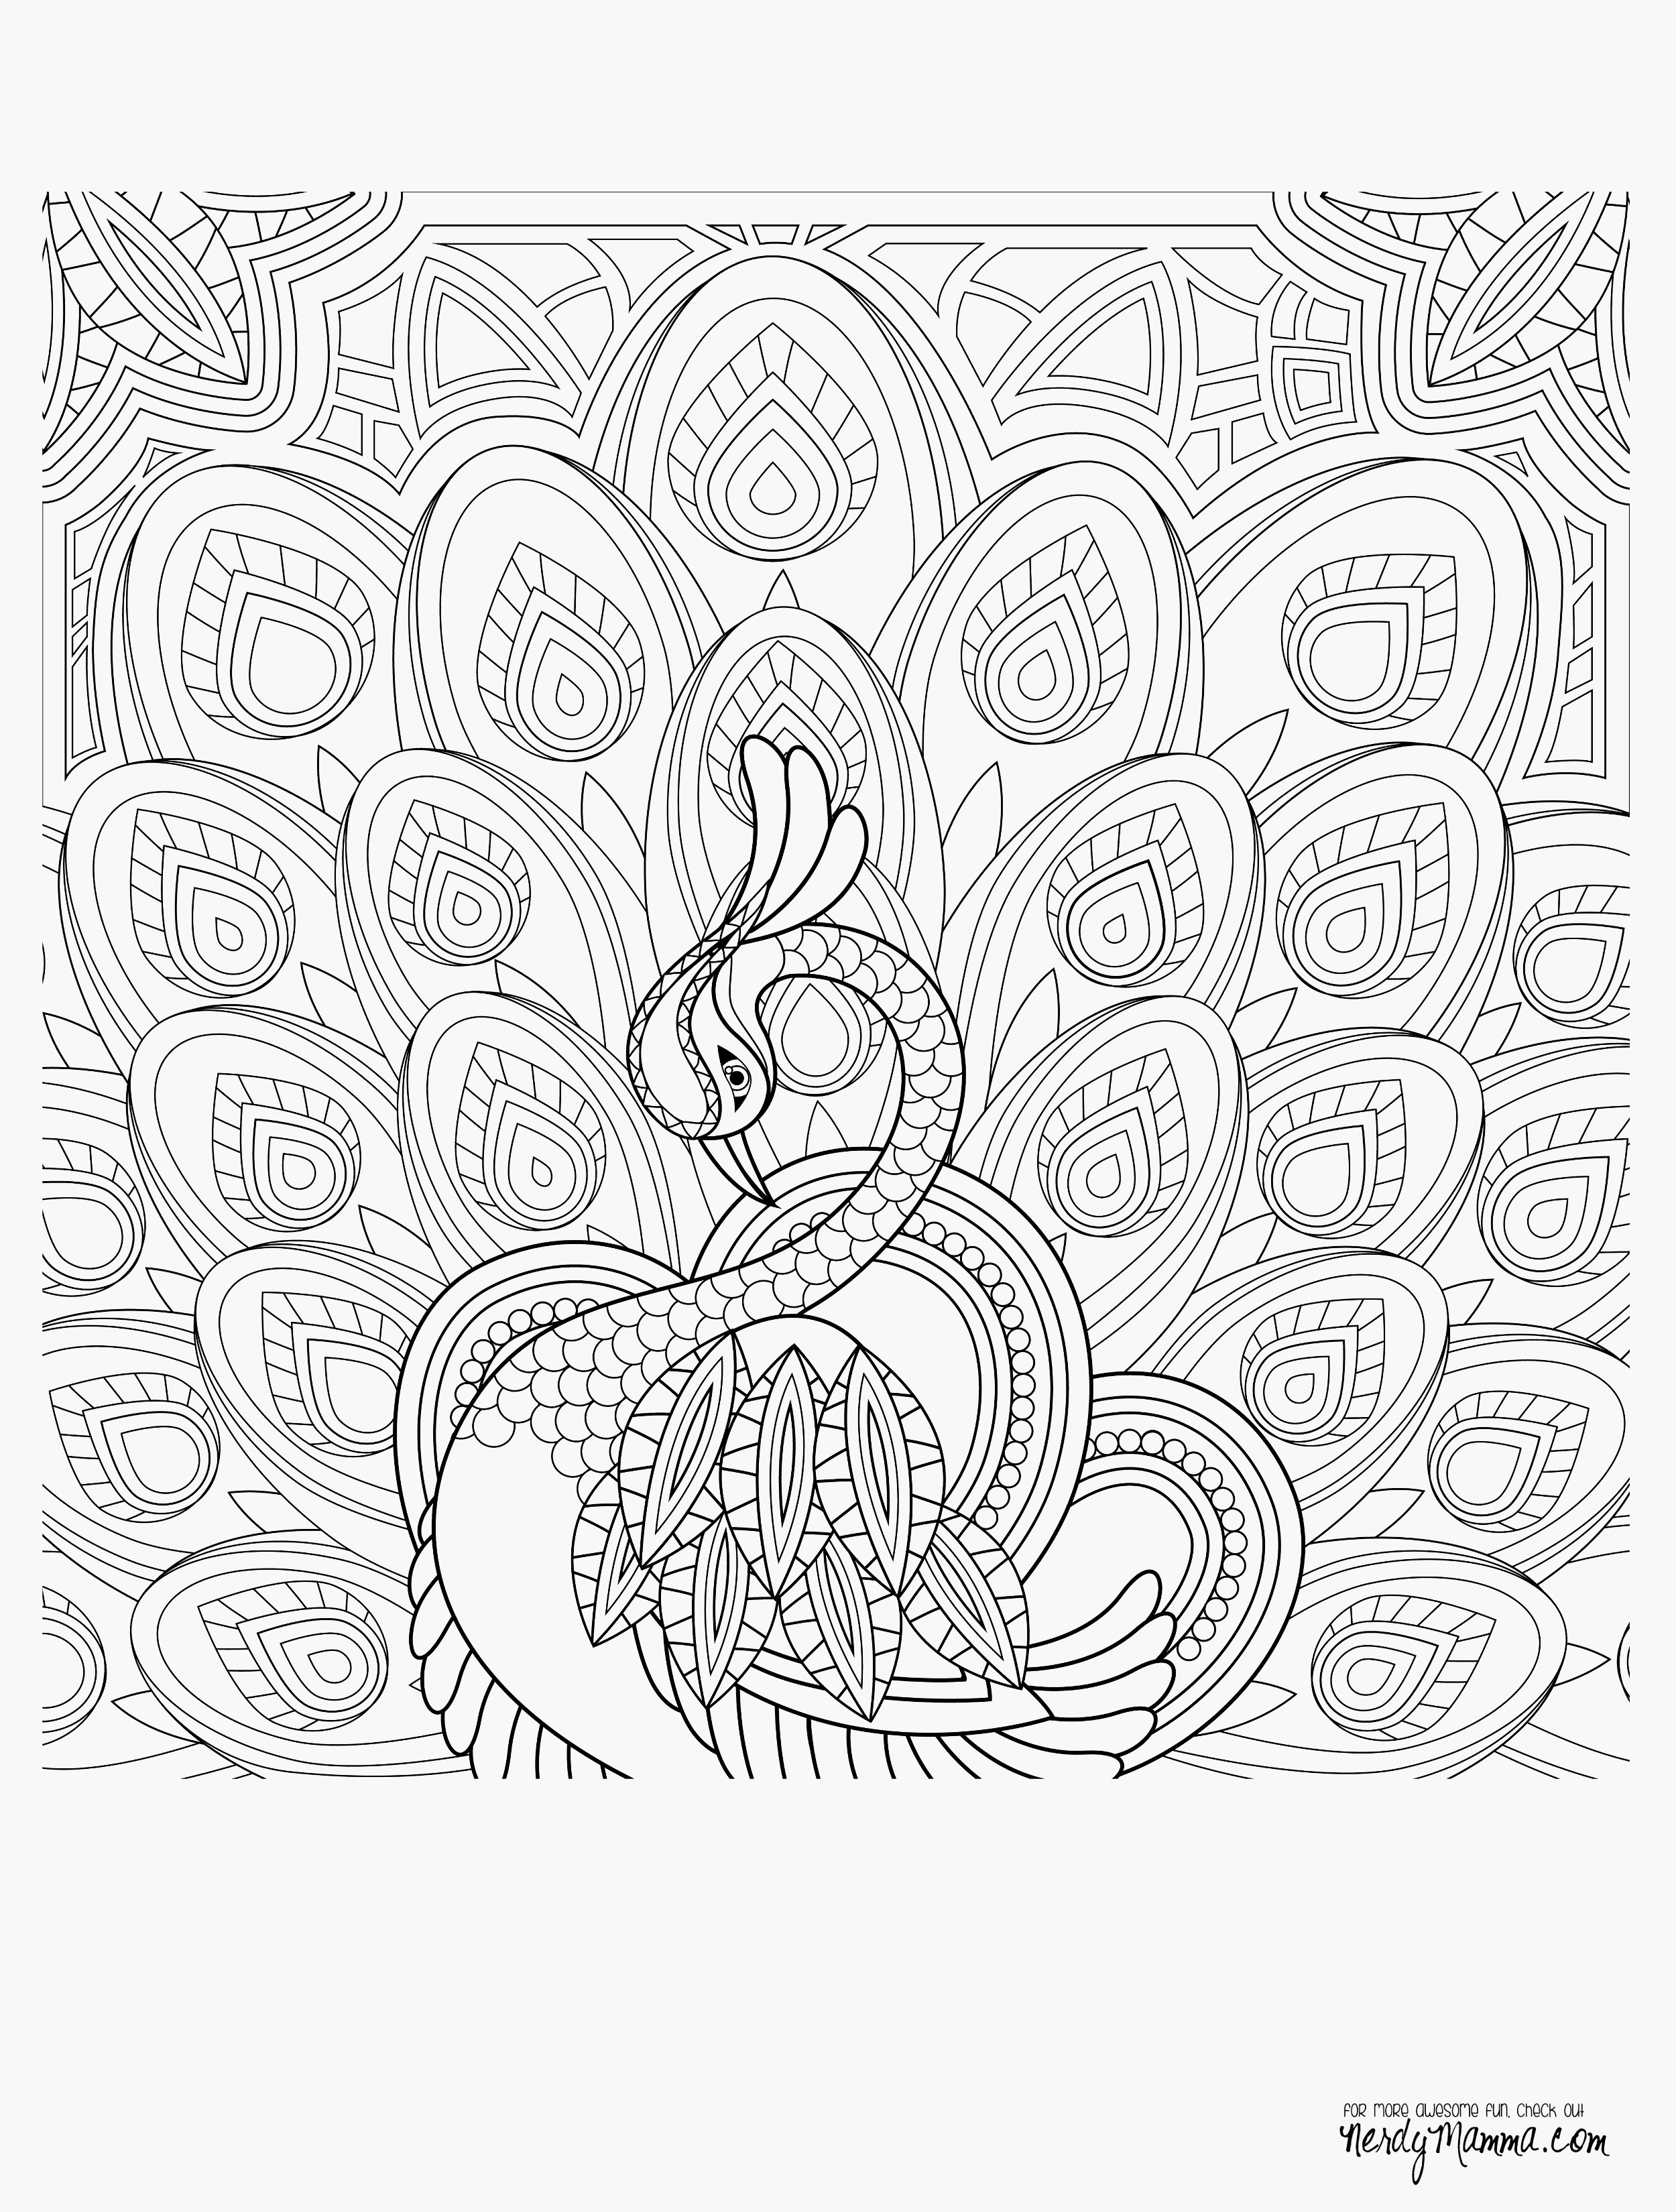 coloring pages for cars Collection-Elf the Shelf Coloring Pages Free Barbie Car Fresh Coloring Pages Book Beautiful Coloring Book 0d 1-f